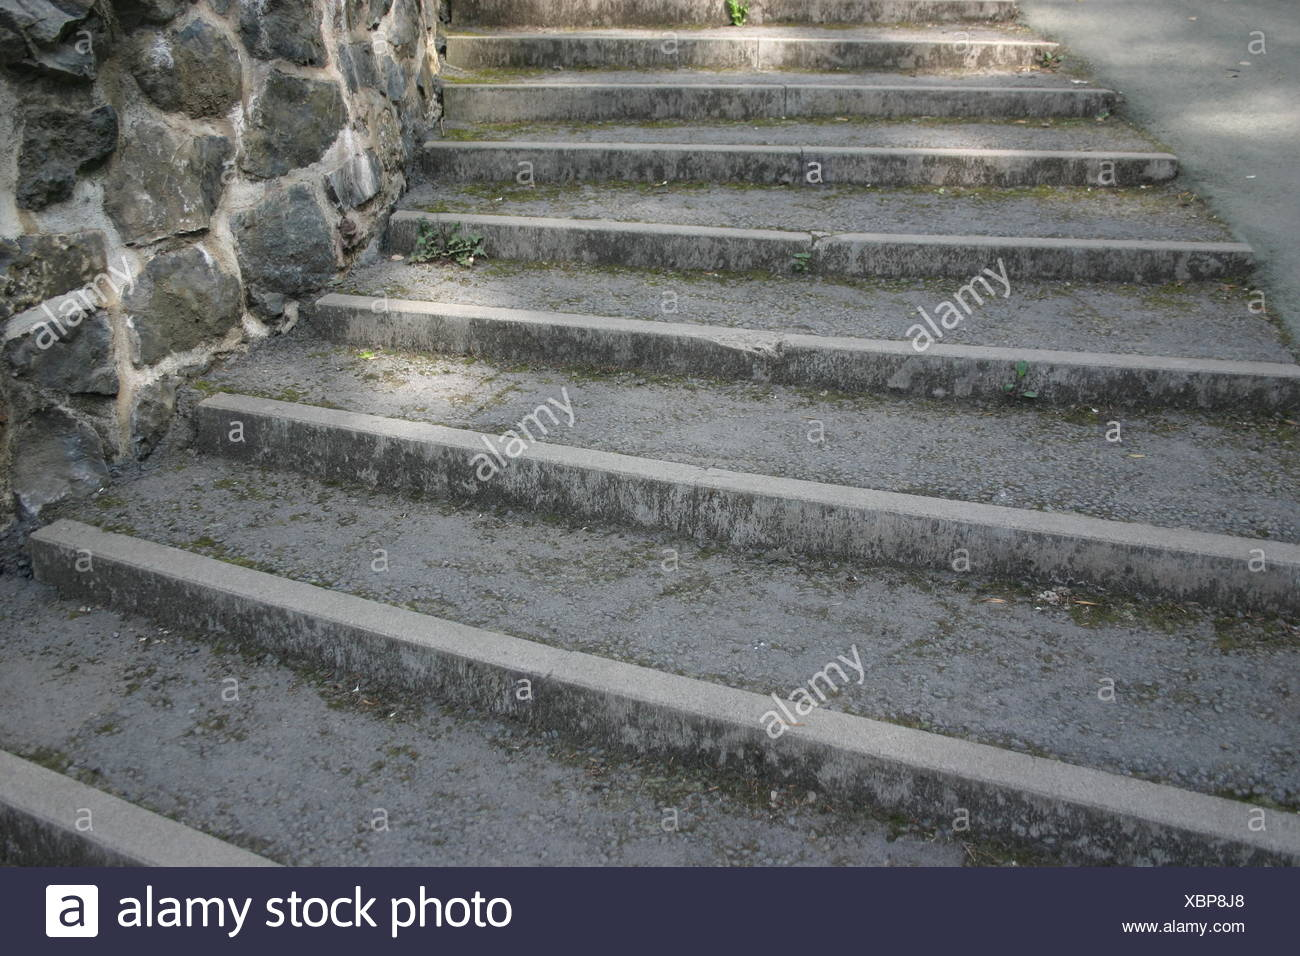 Steintreppe Stairs Upwards Wall Stonewall Ascent Tedious Steps Treppenstufen